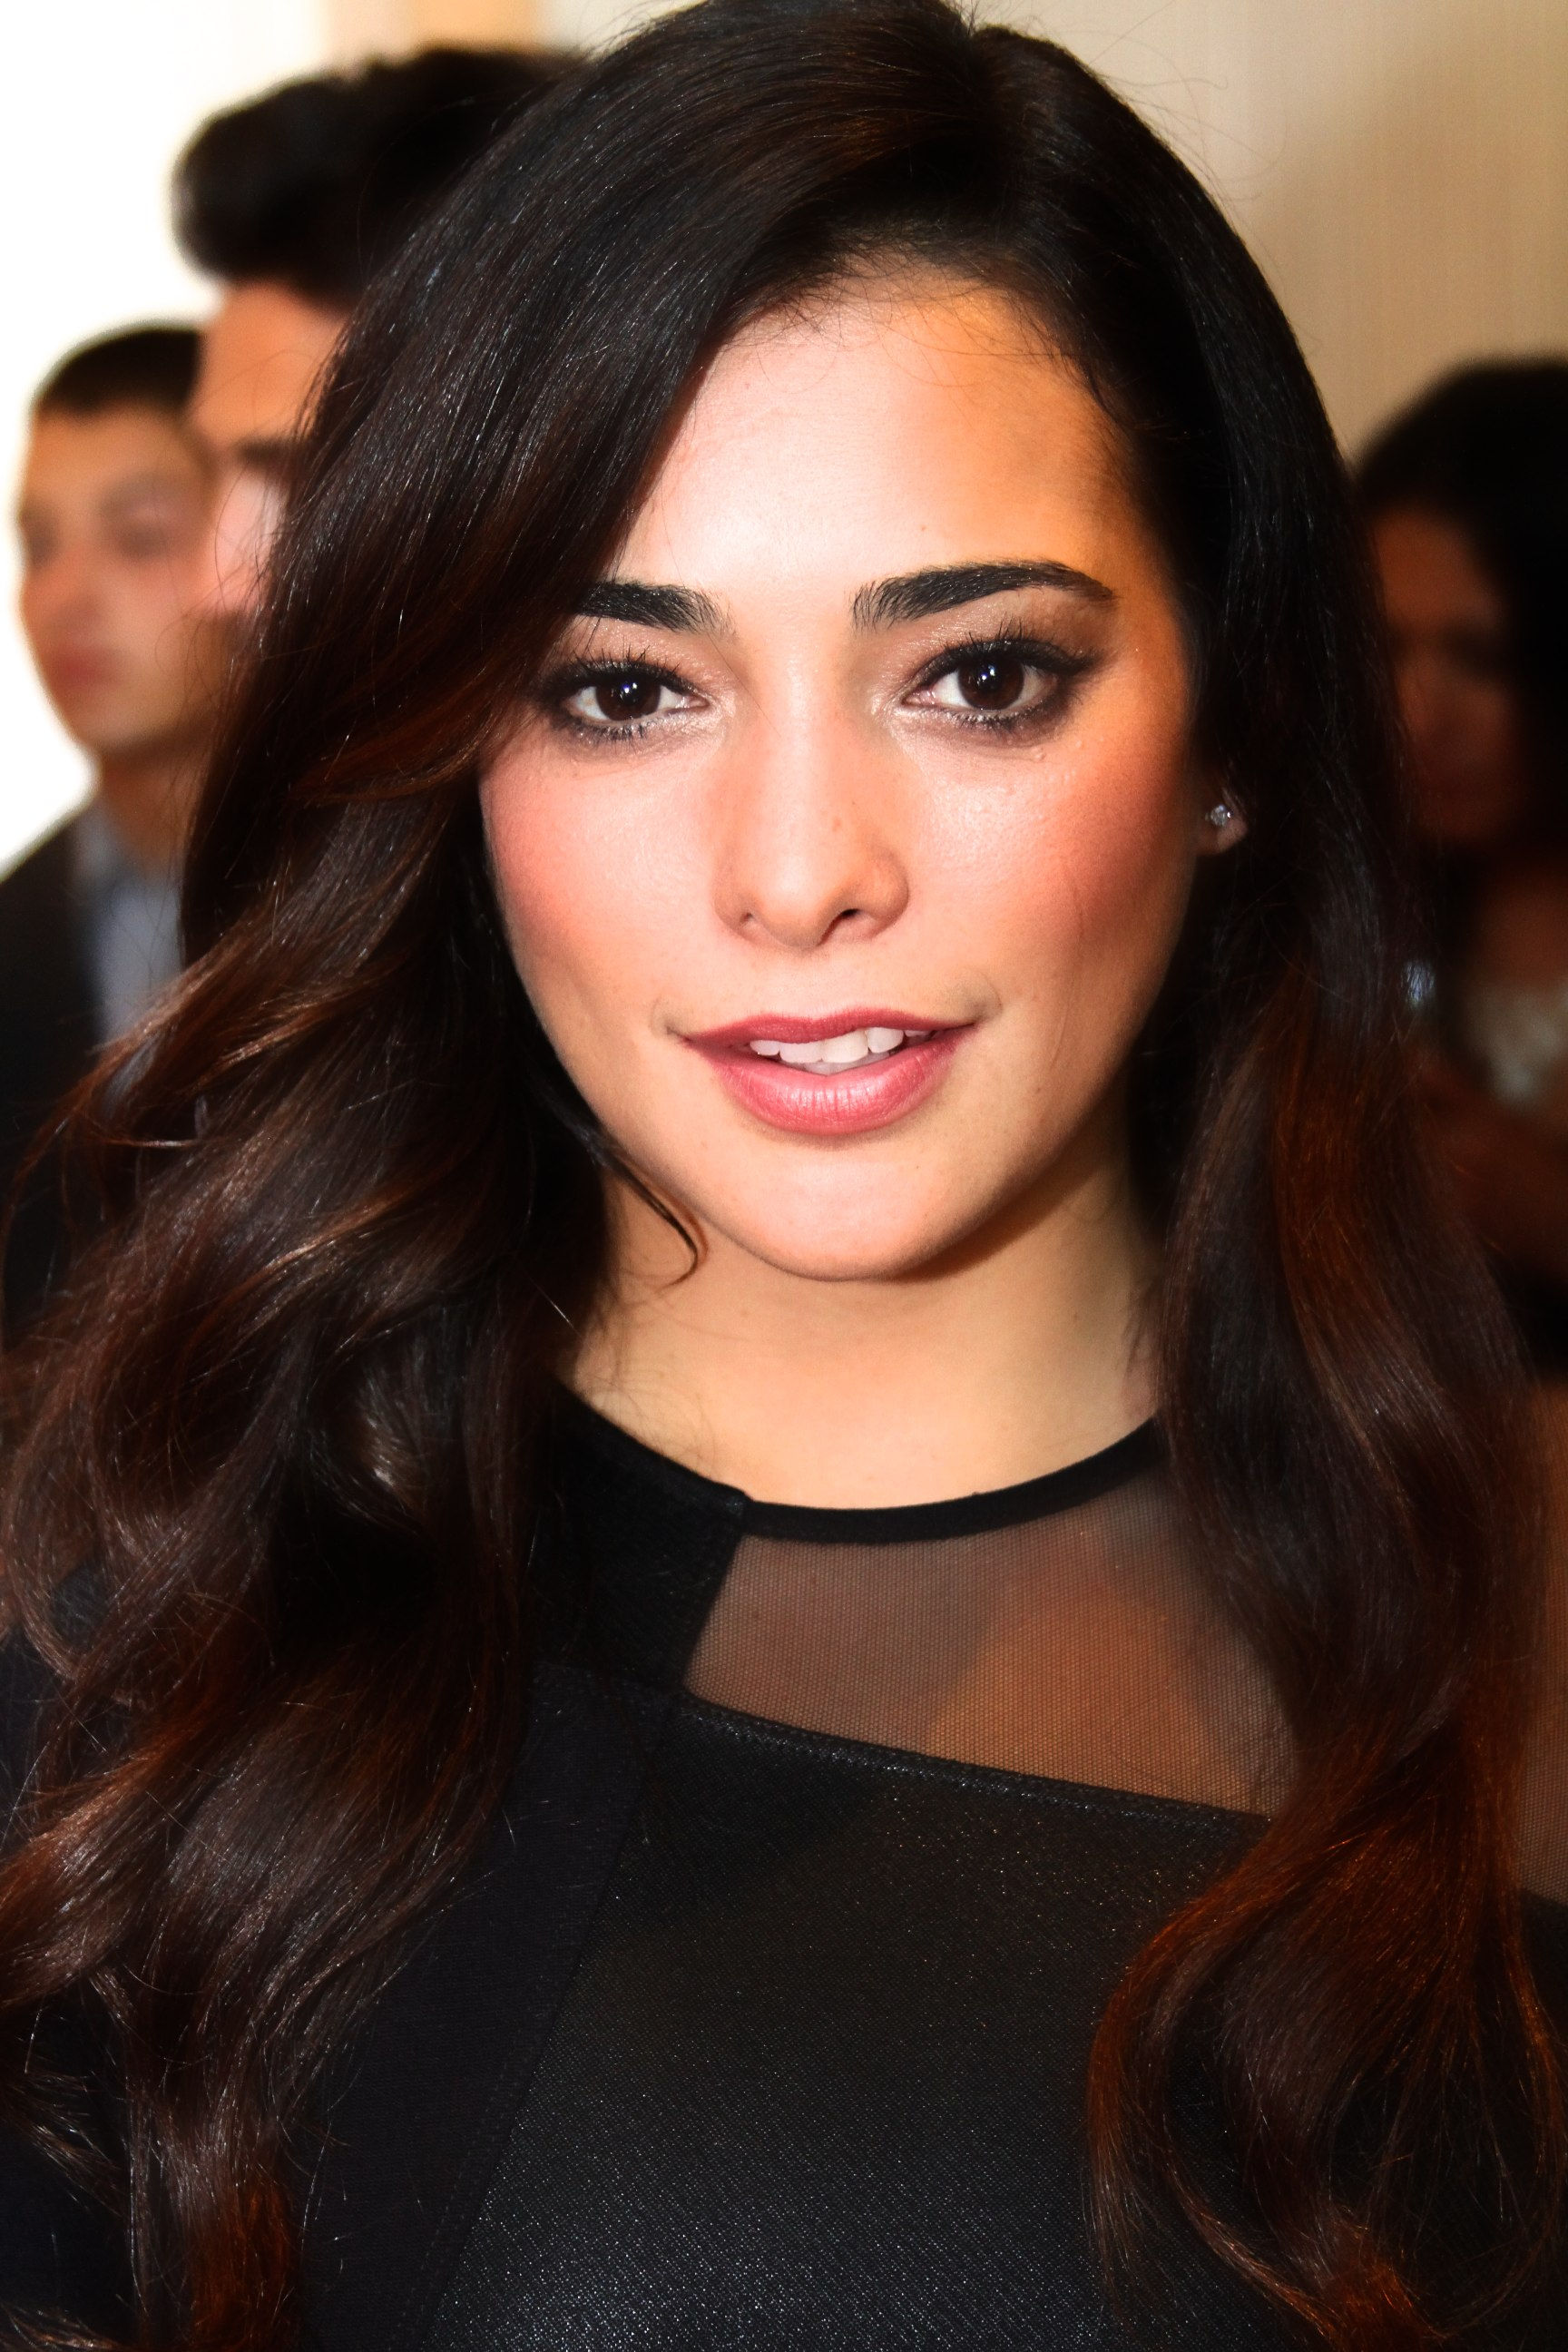 Photo of Natalie Martinez: American actress and model